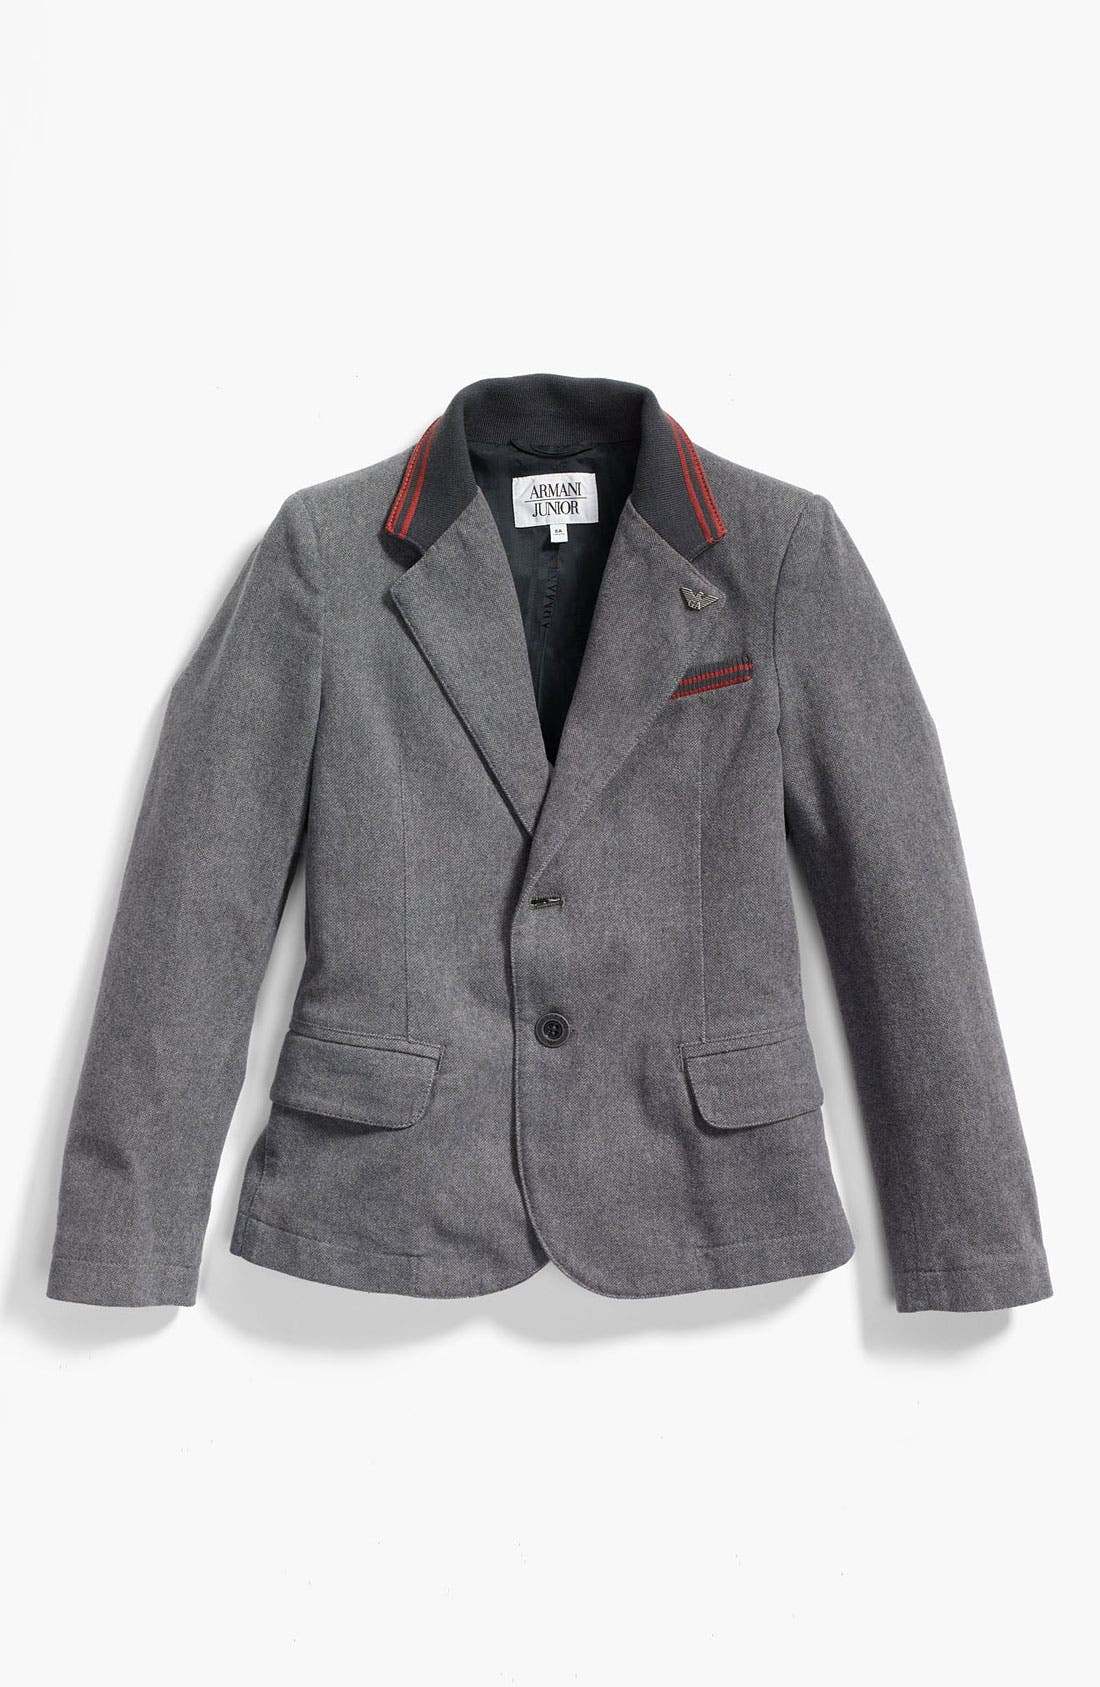 Alternate Image 1 Selected - Armani Junior Sportcoat (Big Boys)